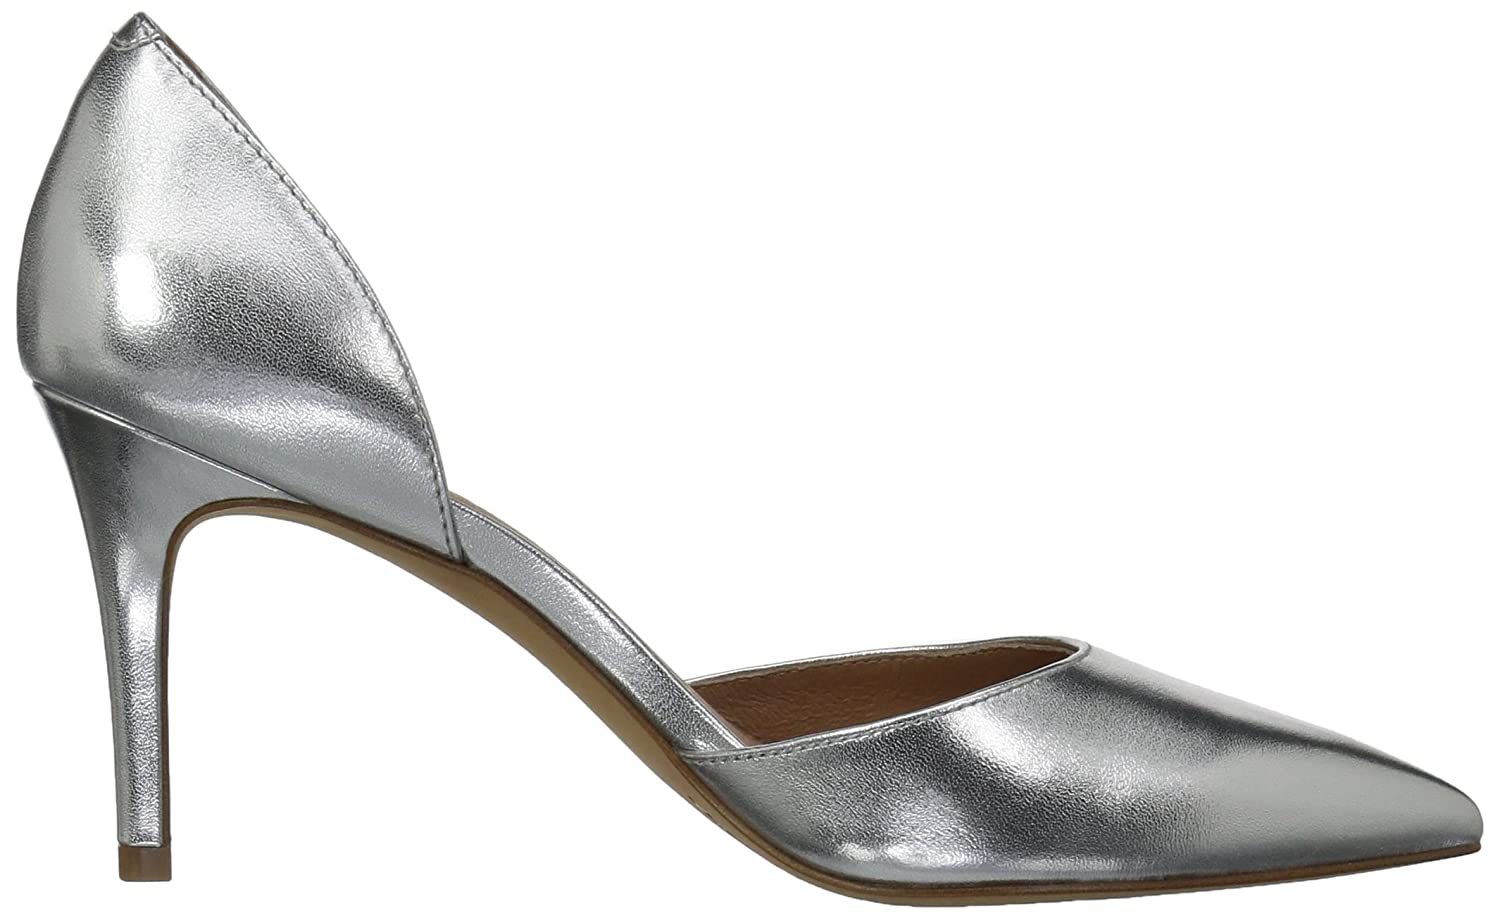 206 Collective Women's Adelaide D'Orsay Dress Pump B0789FP5ZN 6 B(M) US|Silver Leather